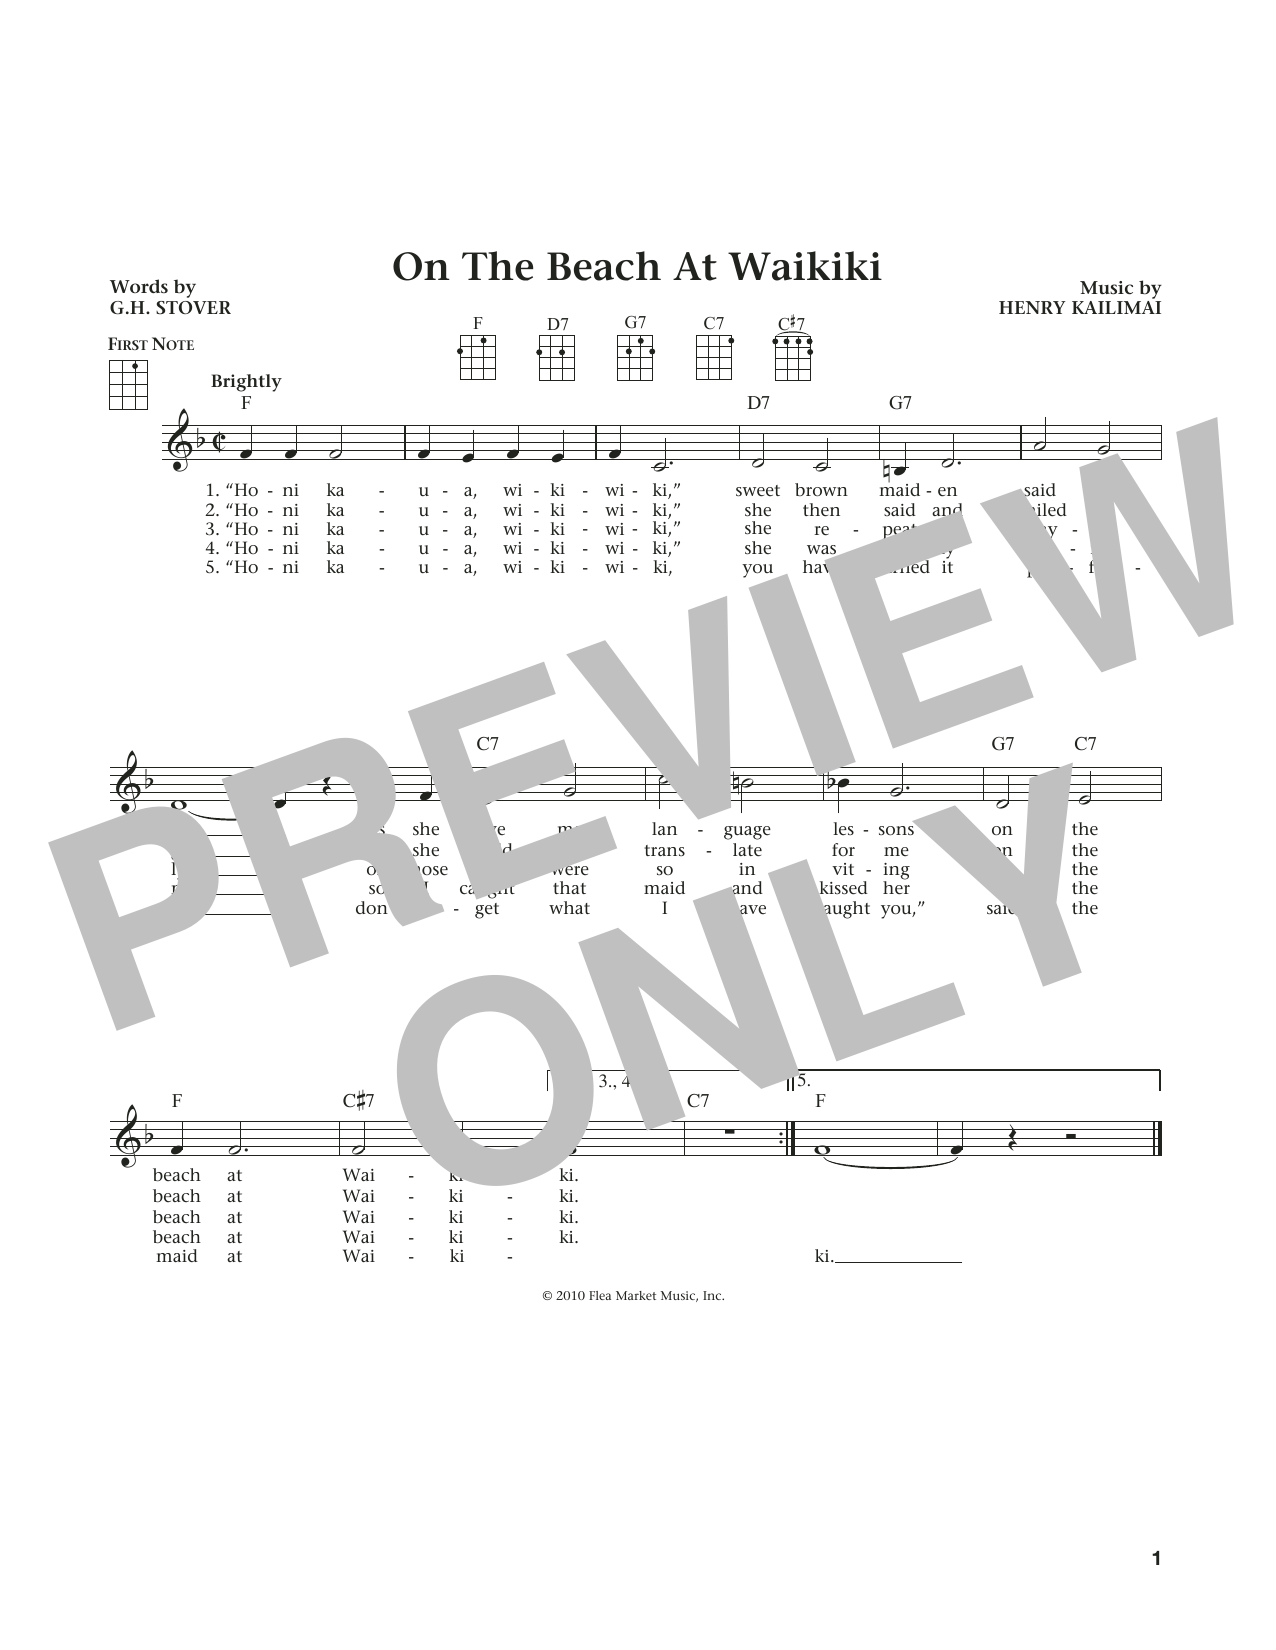 On The Beach At Waikiki (from The Daily Ukulele) (arr. Liz and Jim Beloff) (Ukulele)